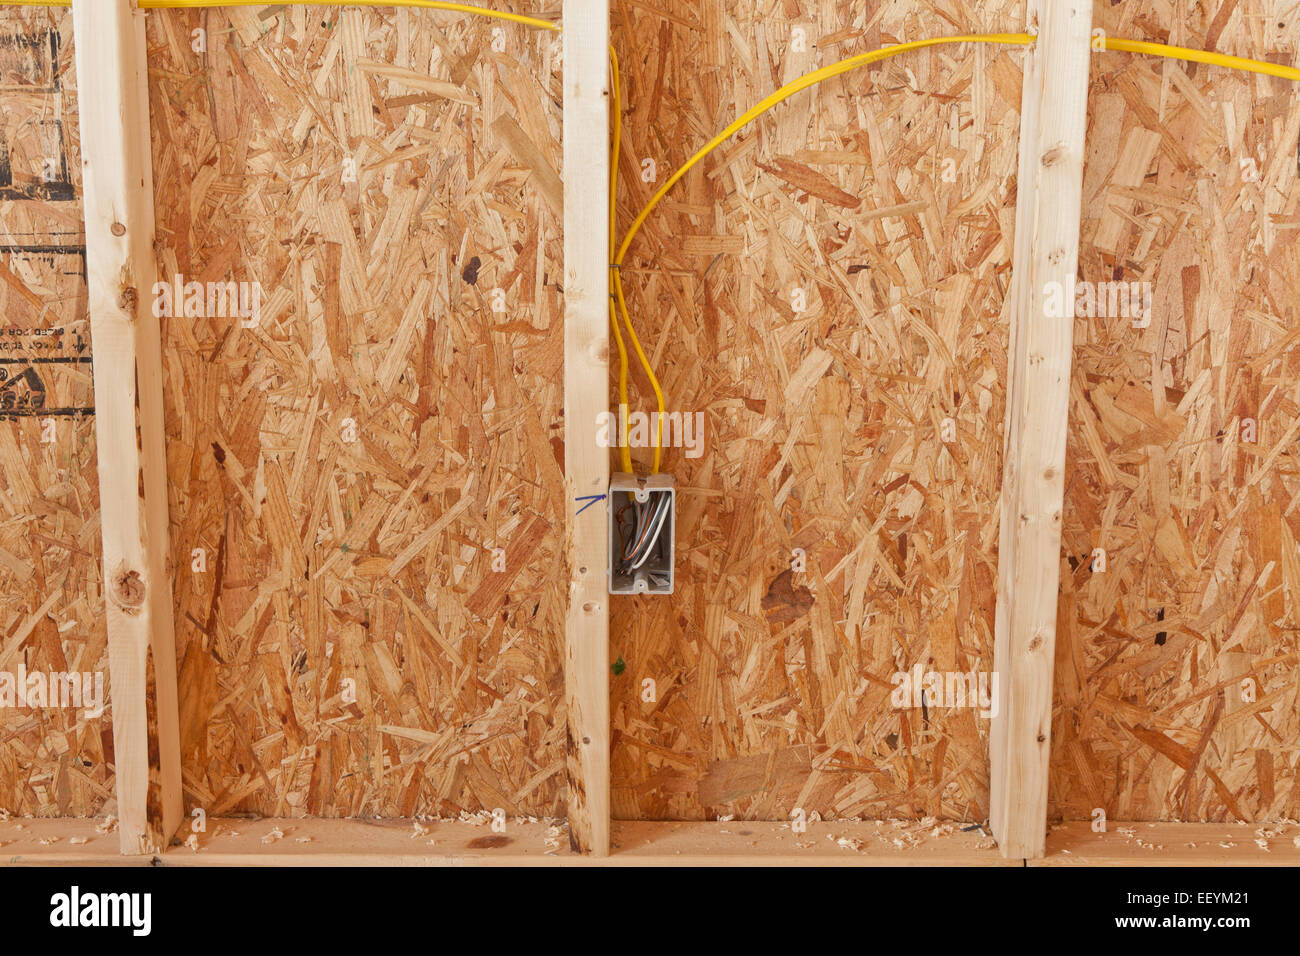 Electrical Wiring In New House Stockfotos & Electrical Wiring In New ...